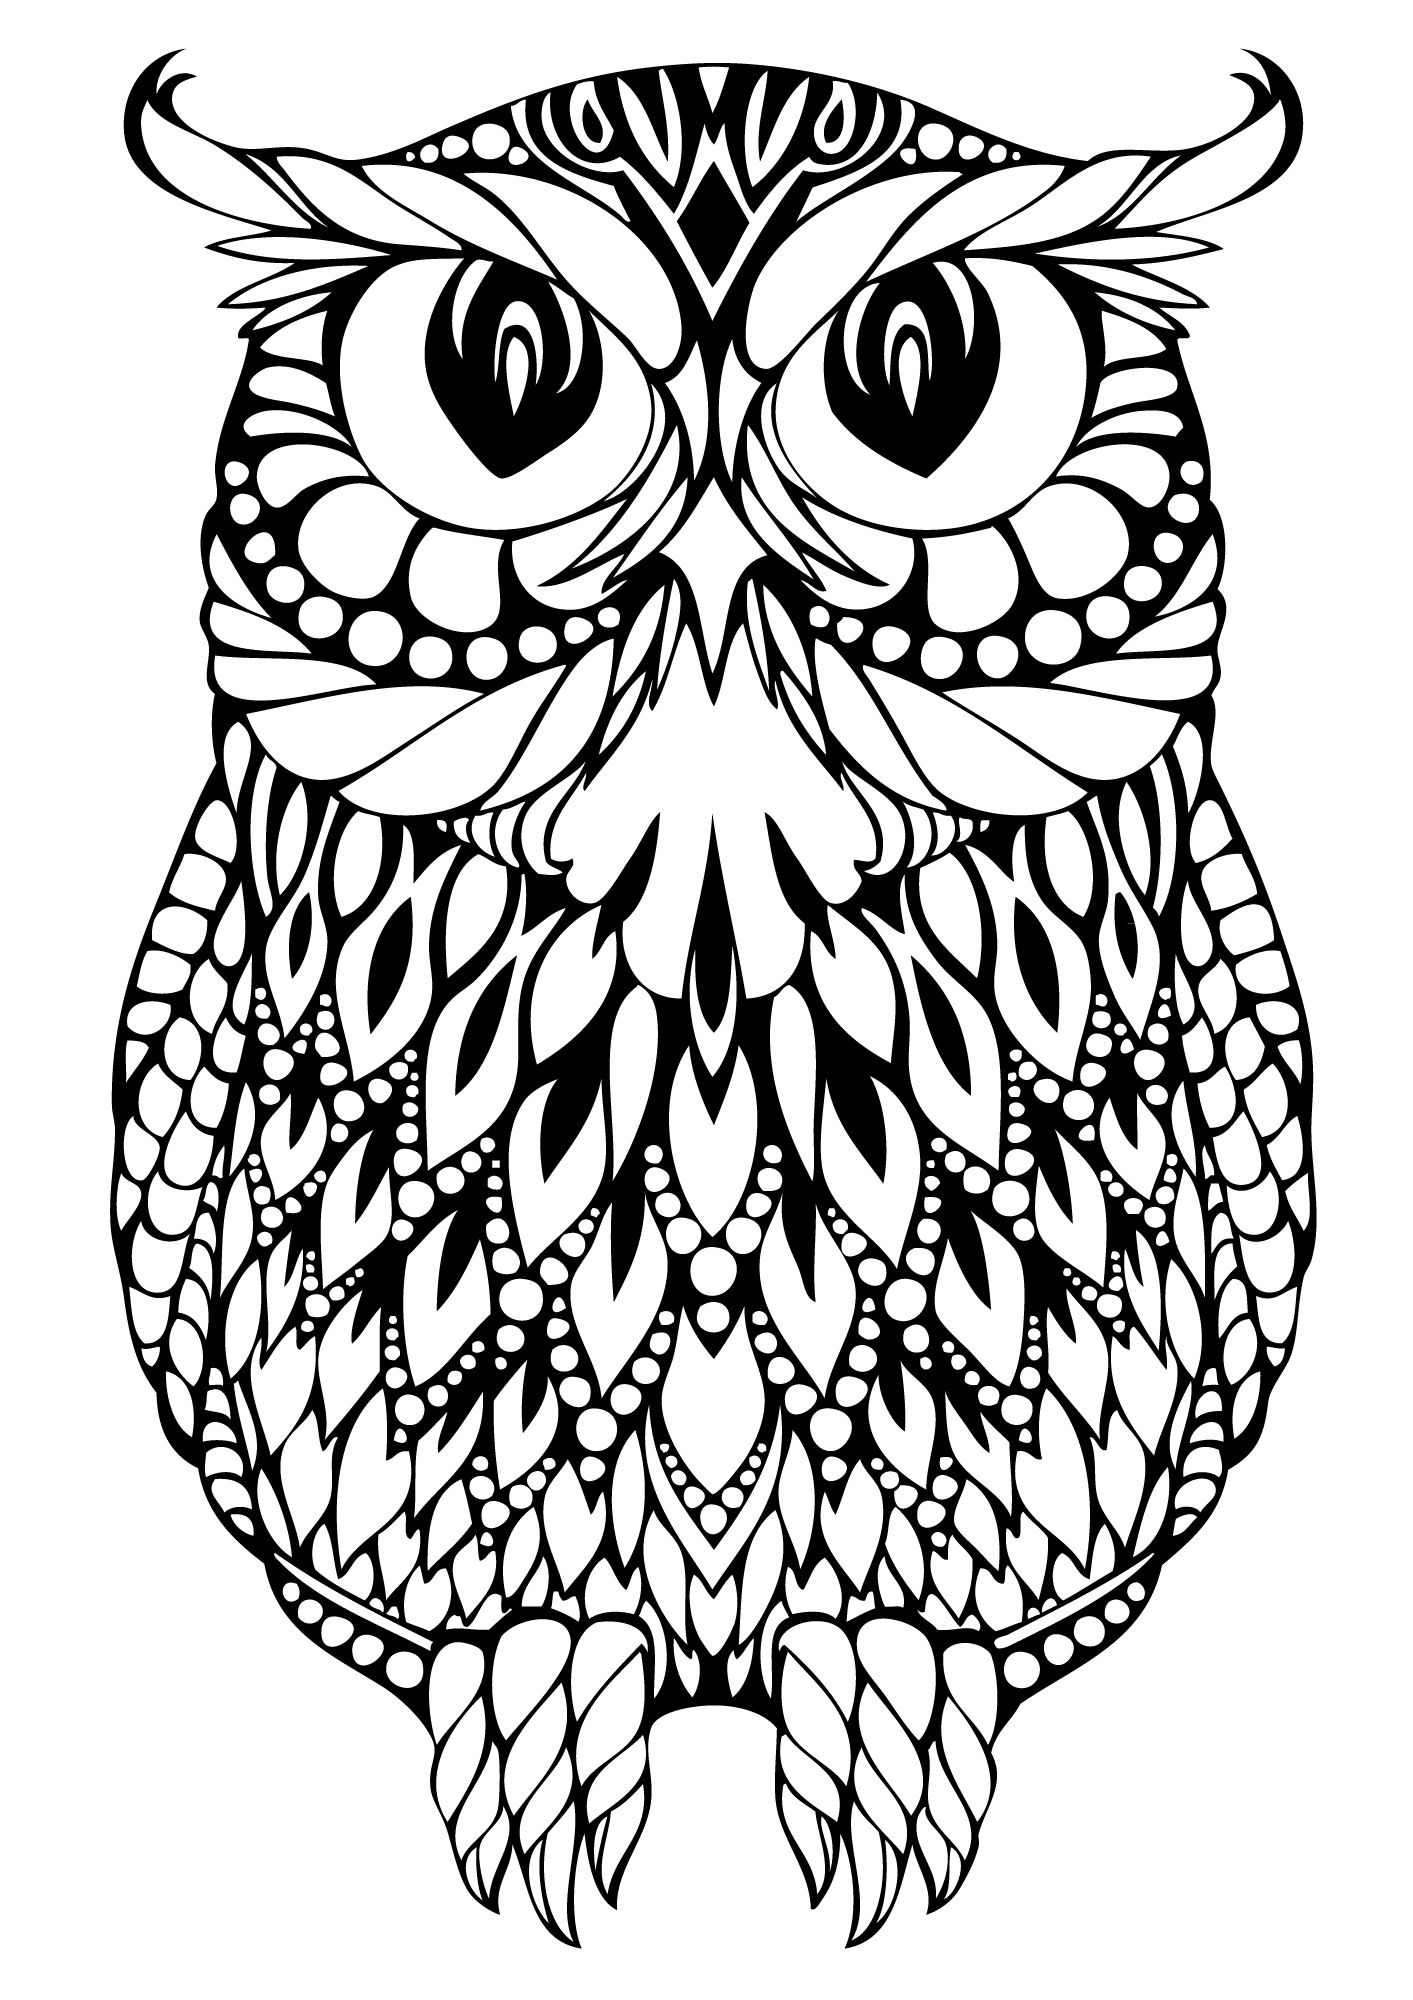 Owl Coloring Pages  Koloringpages  Owls  Pinterest  Coloring